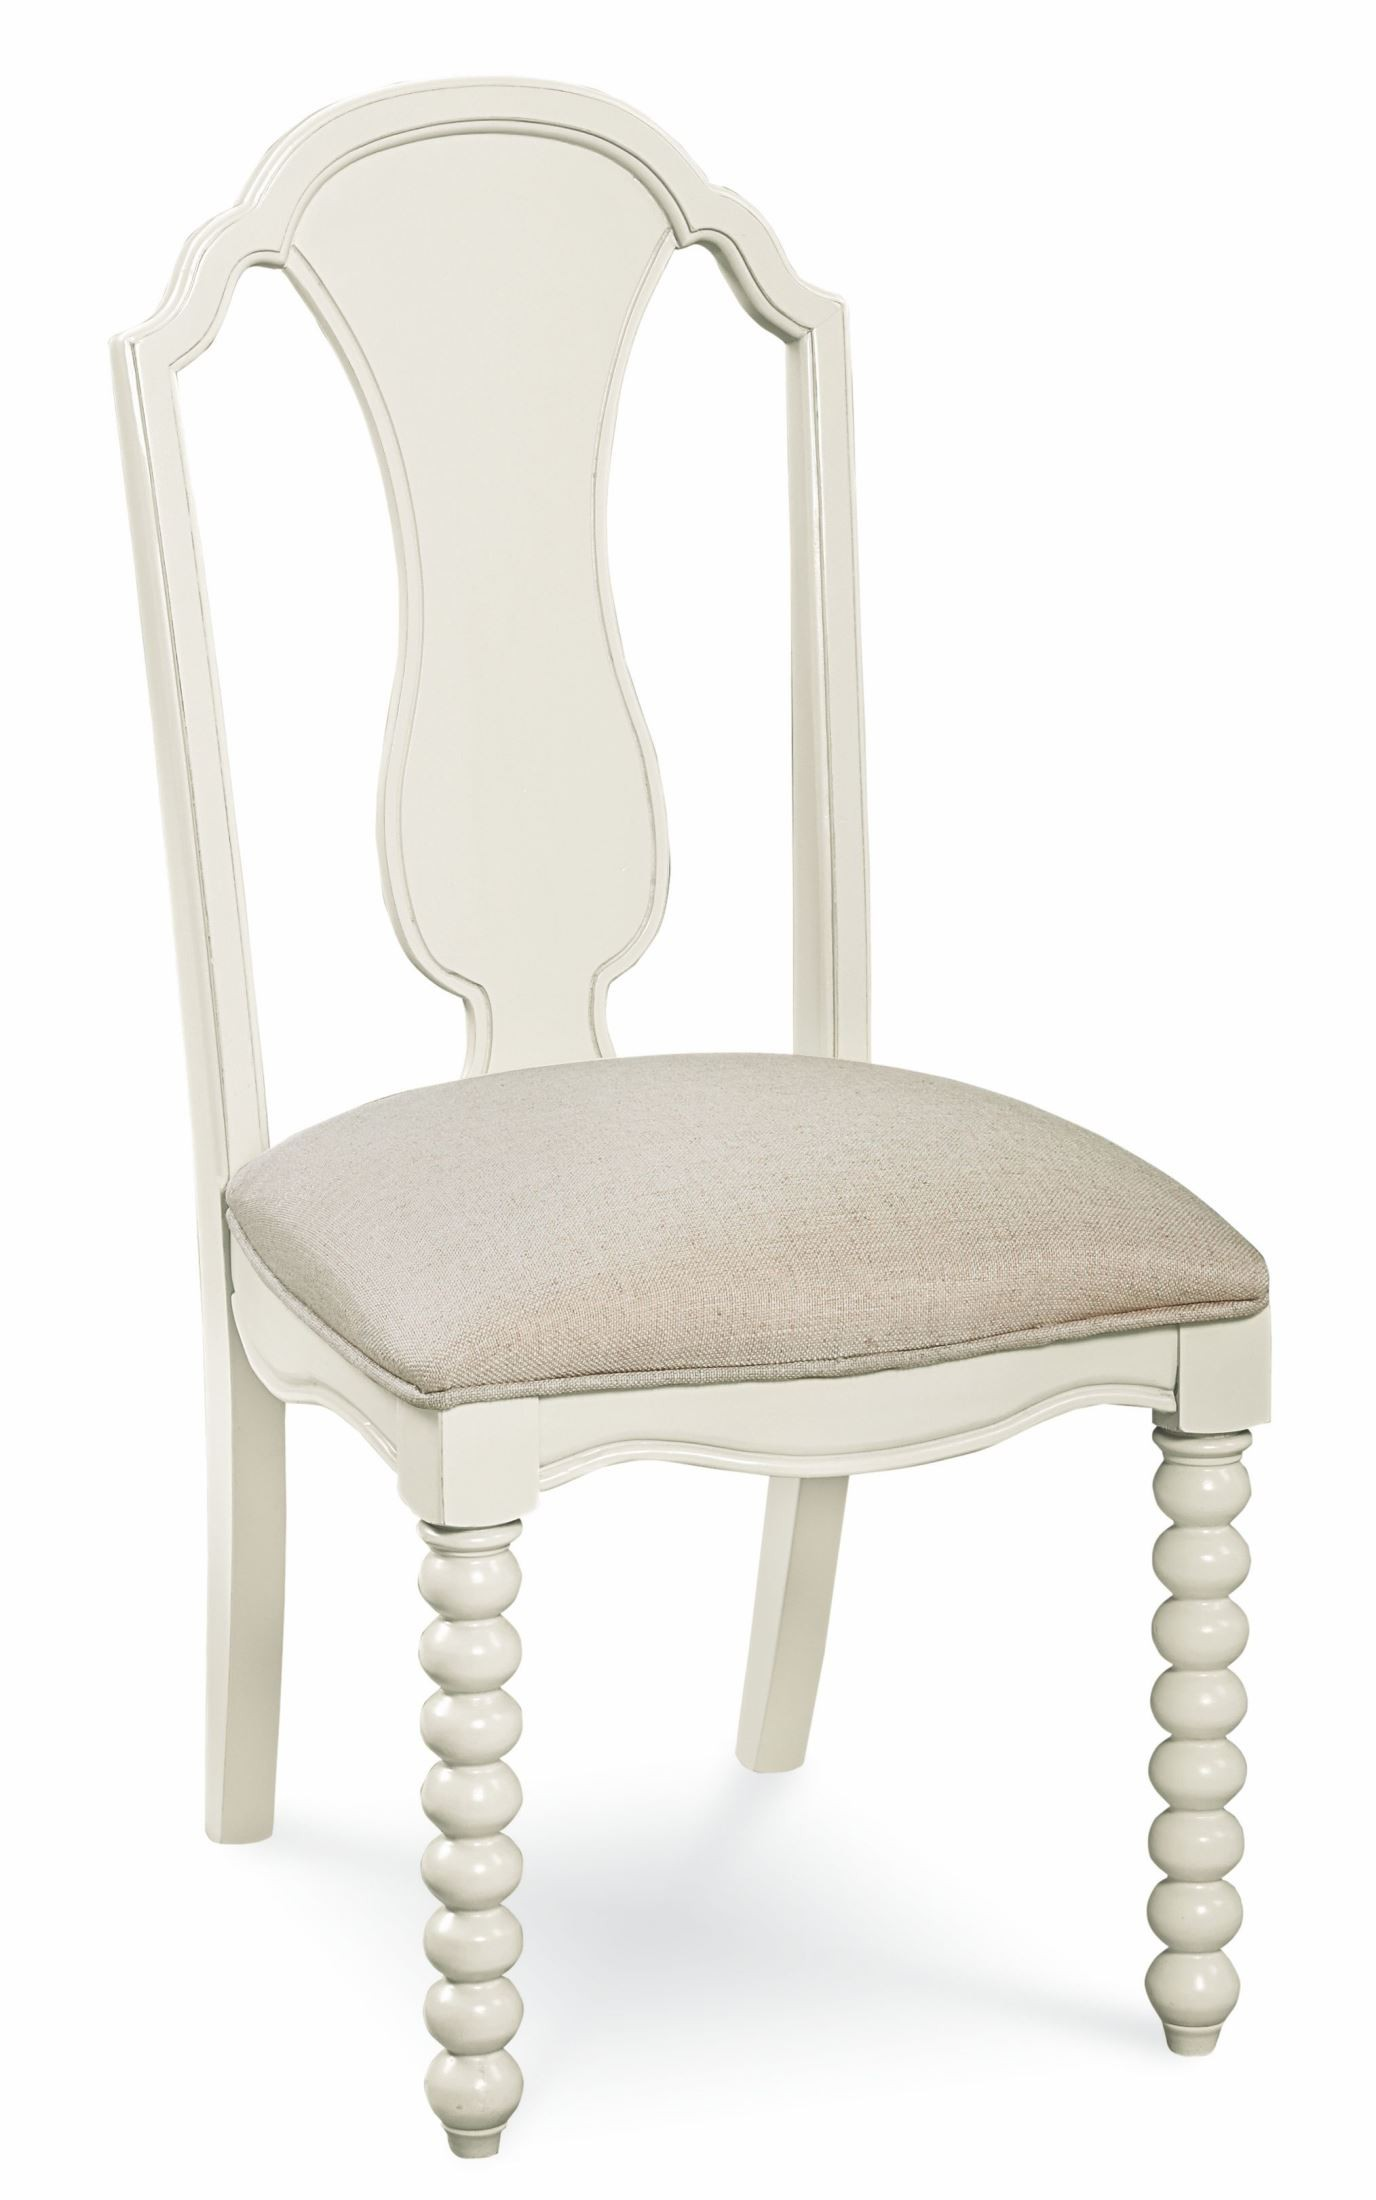 Inspirations Seashell White Upholstered Boutique Chair from Legacy ...